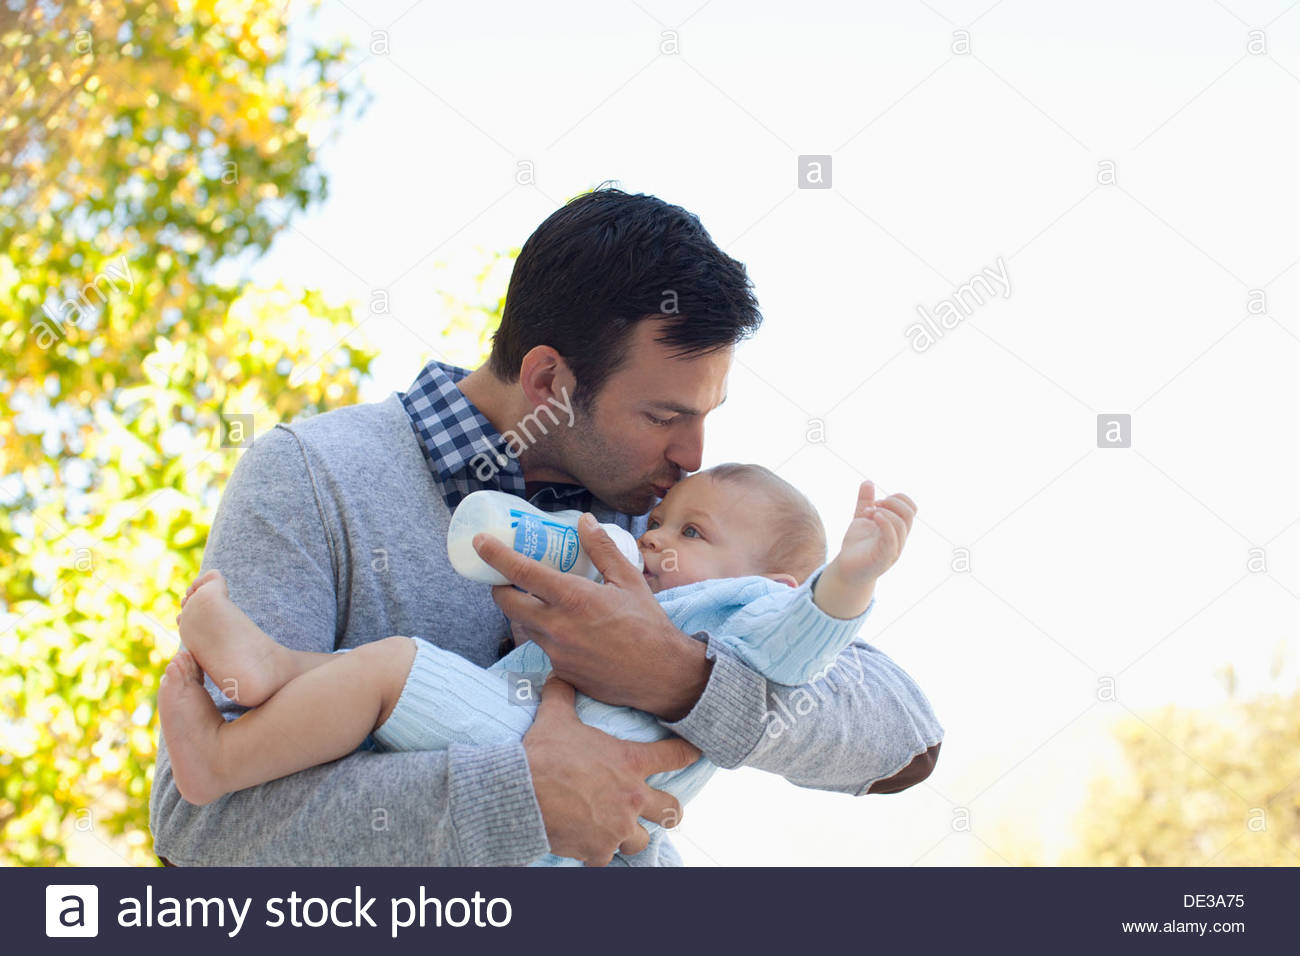 Father bottle feeding baby outdoors - Stock Image